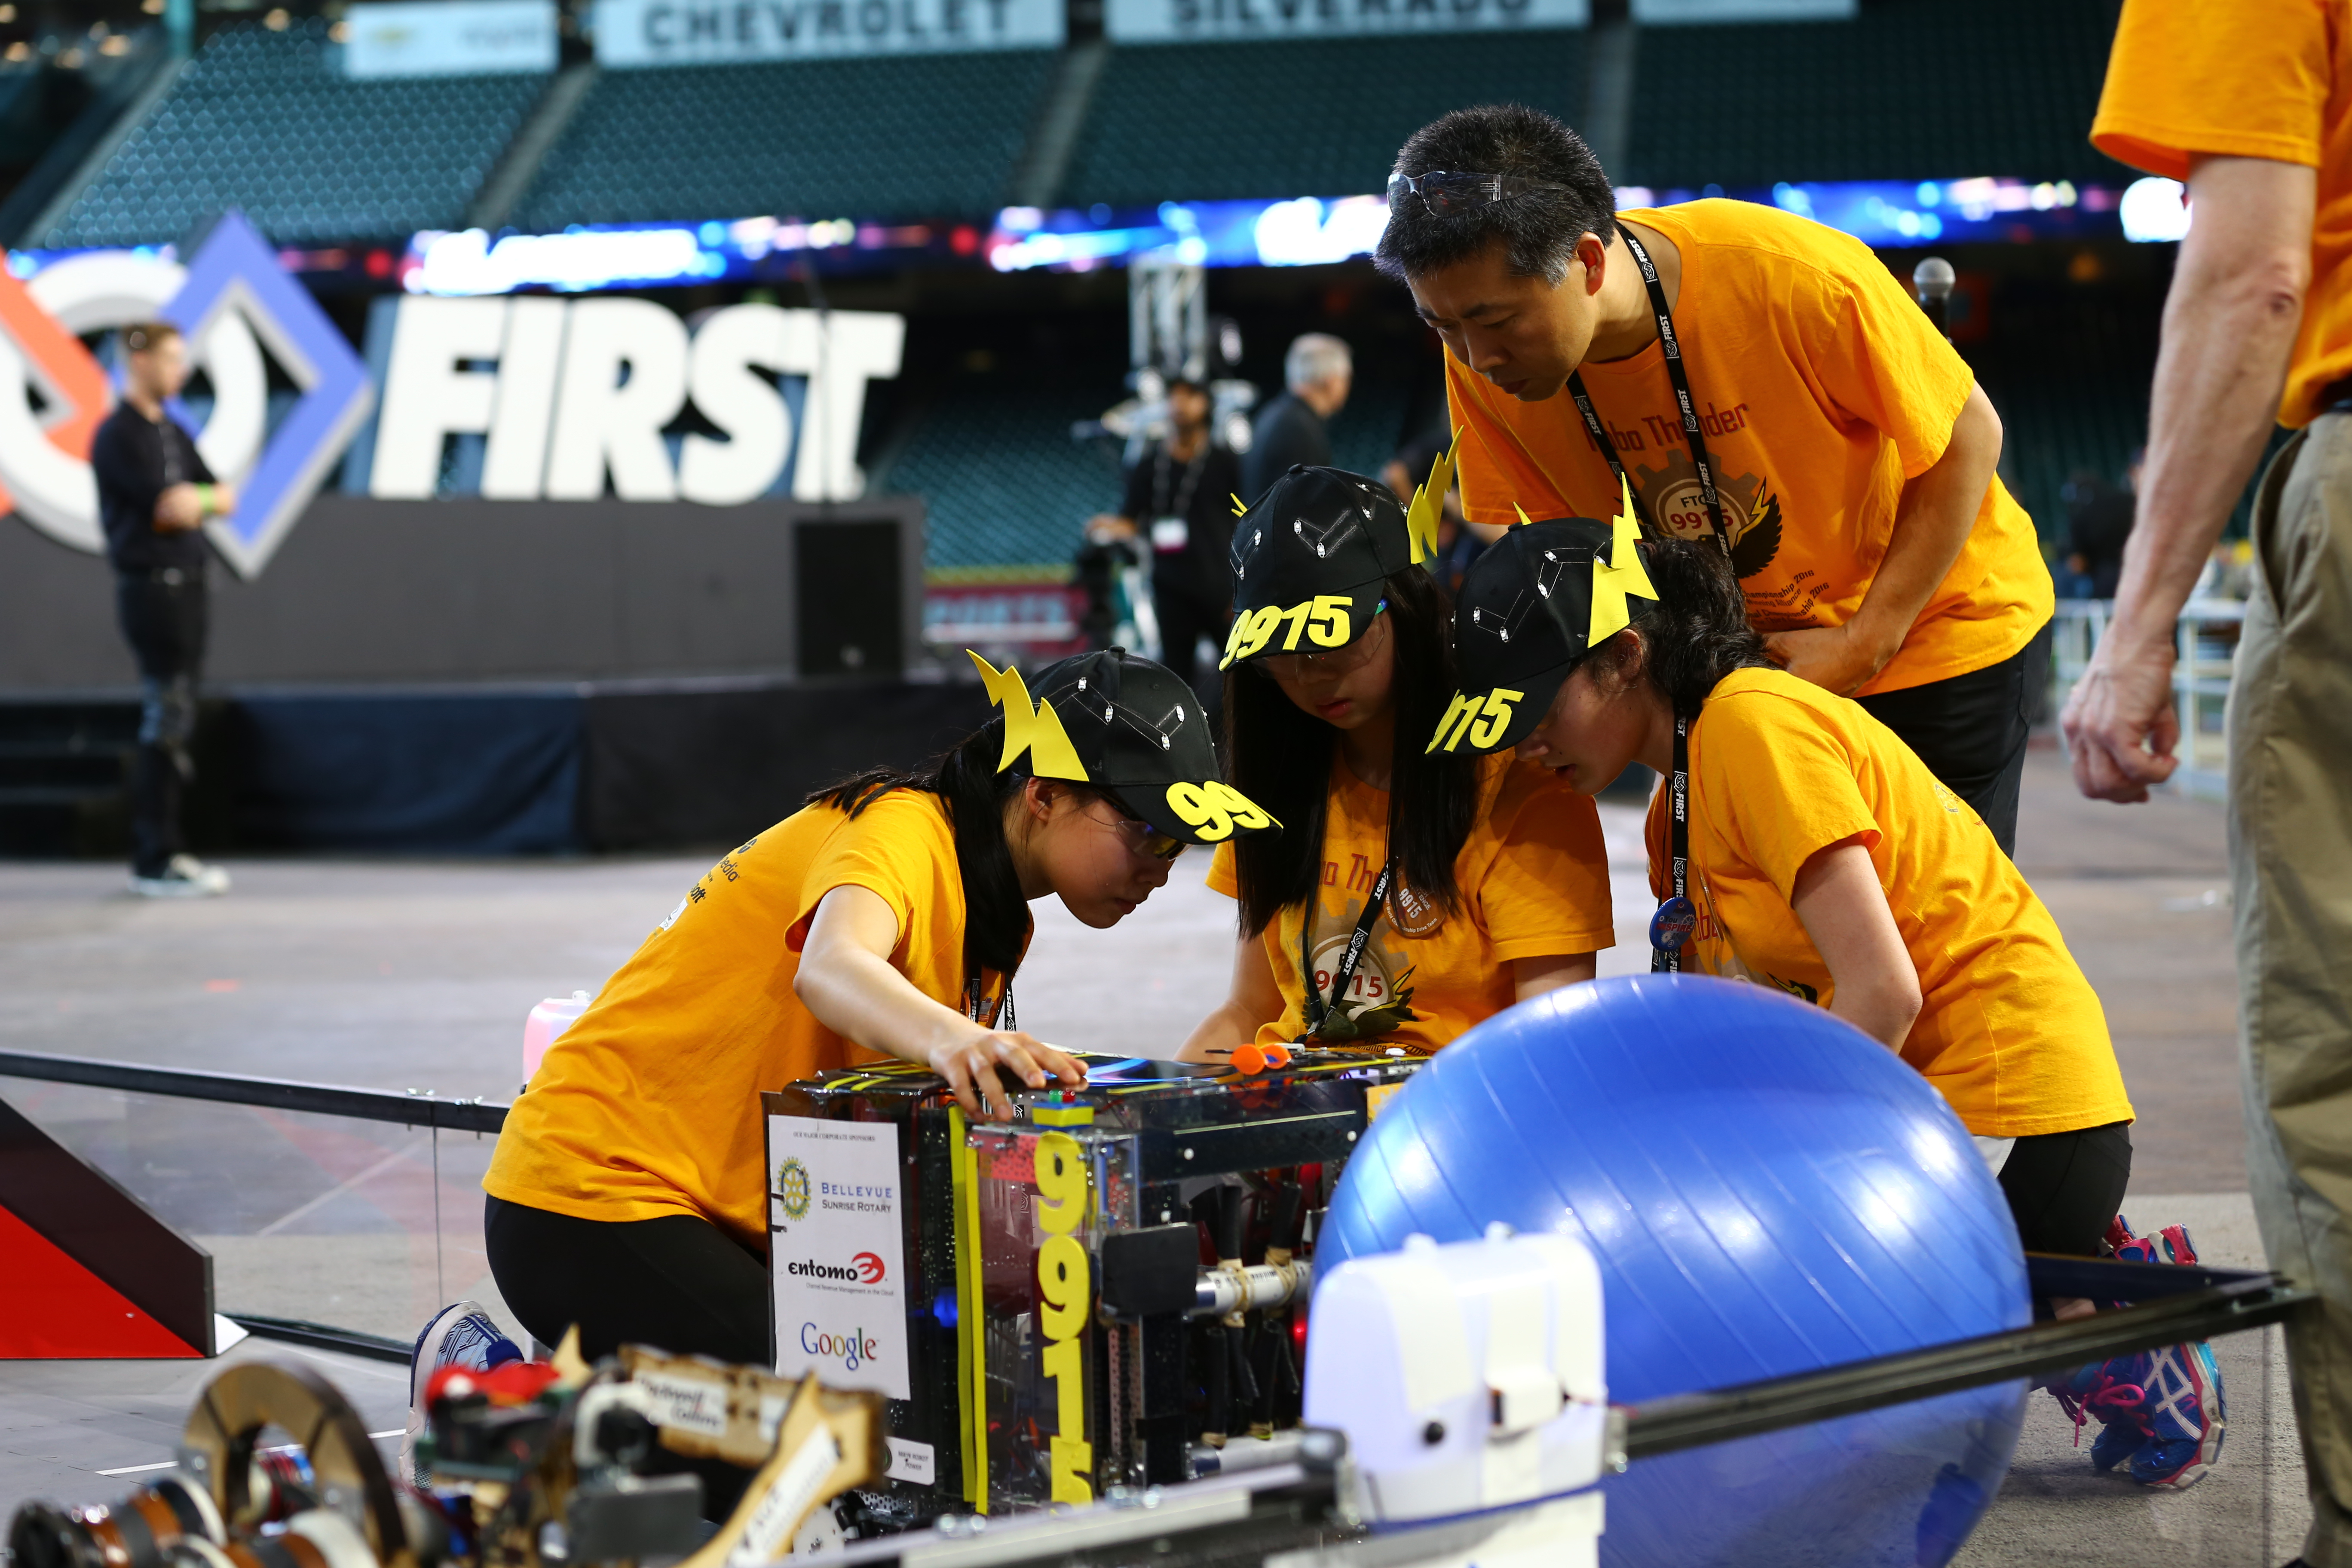 FIRST Kicks Off World's Largest Celebration of Science, Technology, Engineering, and Math for Students. Championship Presenting Sponsor Qualcomm Incorporated and Others Celebrate Young Inventors from 33 Countries at FIRST Championship in Houston. (Photo: Business Wire)